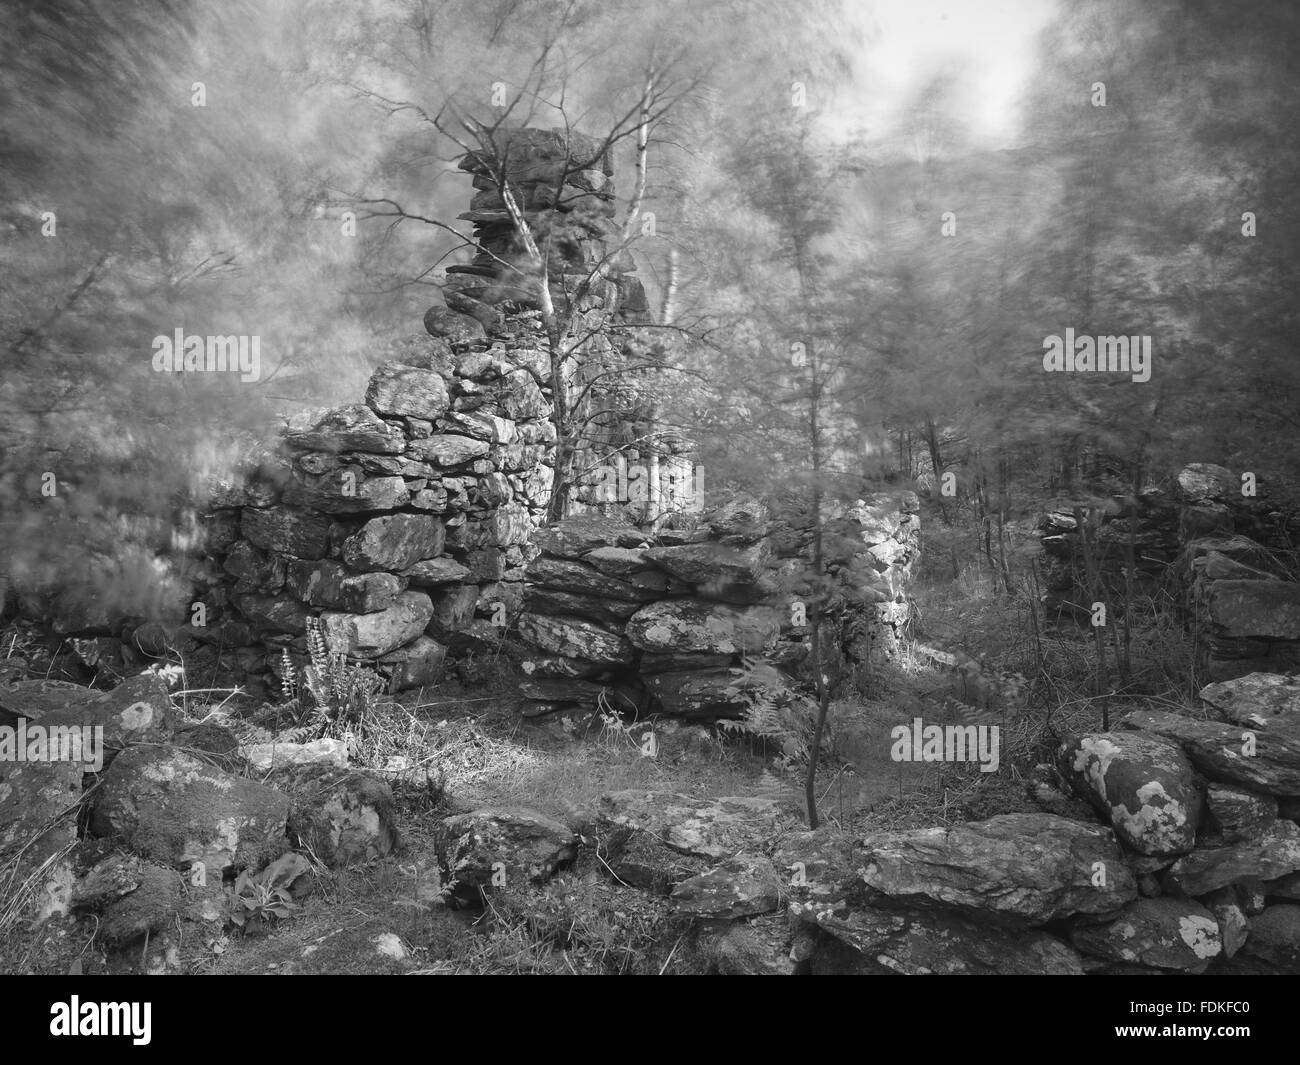 A black and white photograph of a ruined building on Llyndy Isaf, an estate of 600 acres in Snowdonia, in the Nant - Stock Image